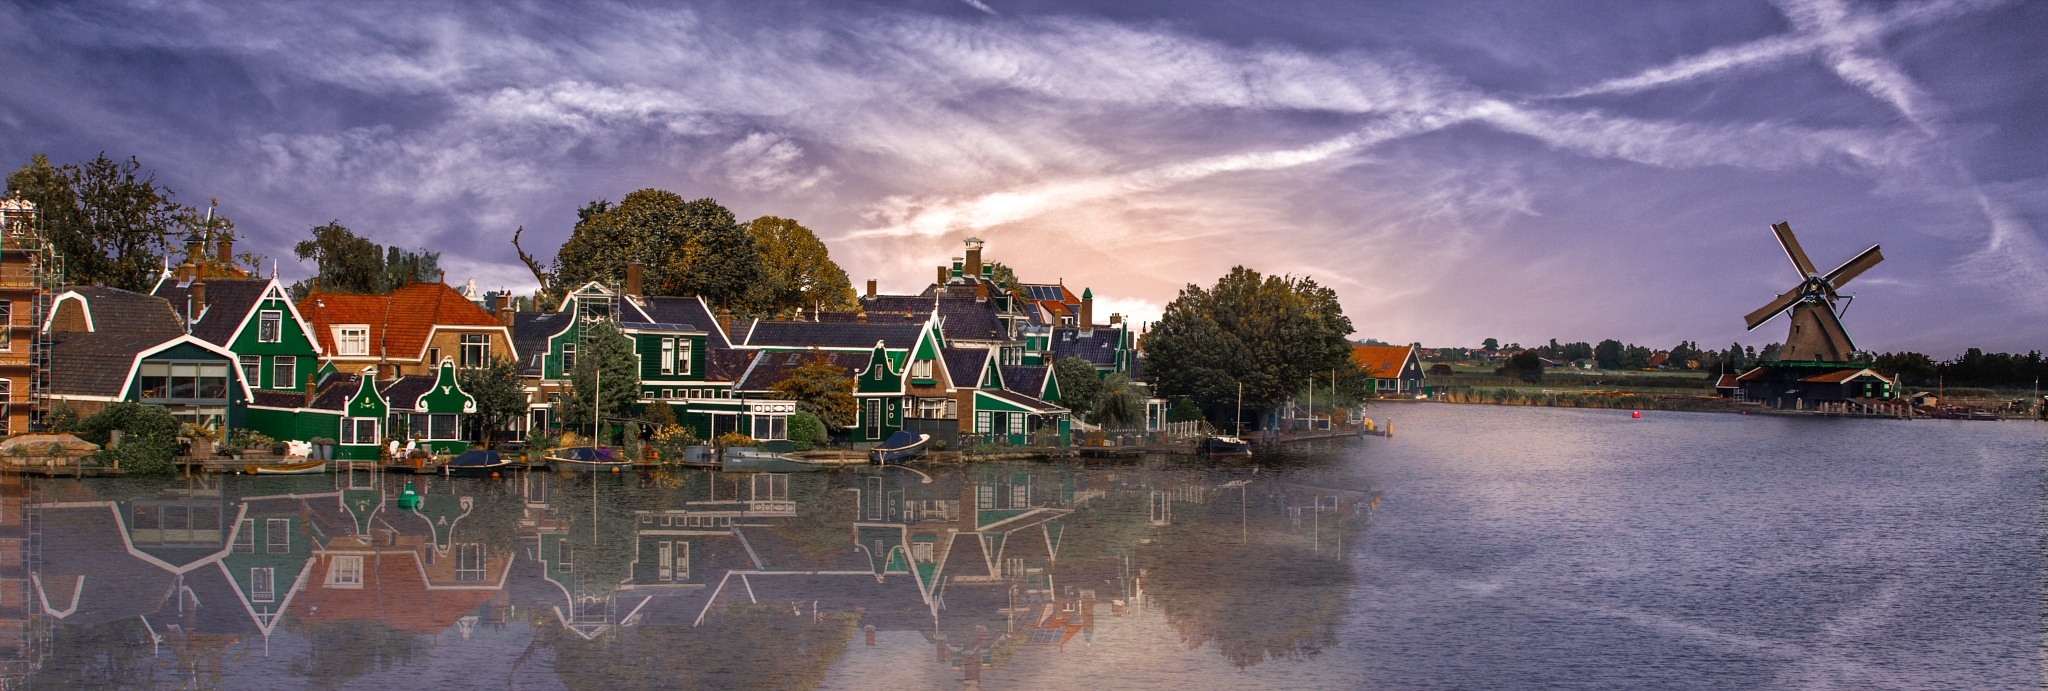 A Dutch Pano by RAF PHOTOGRAPHY